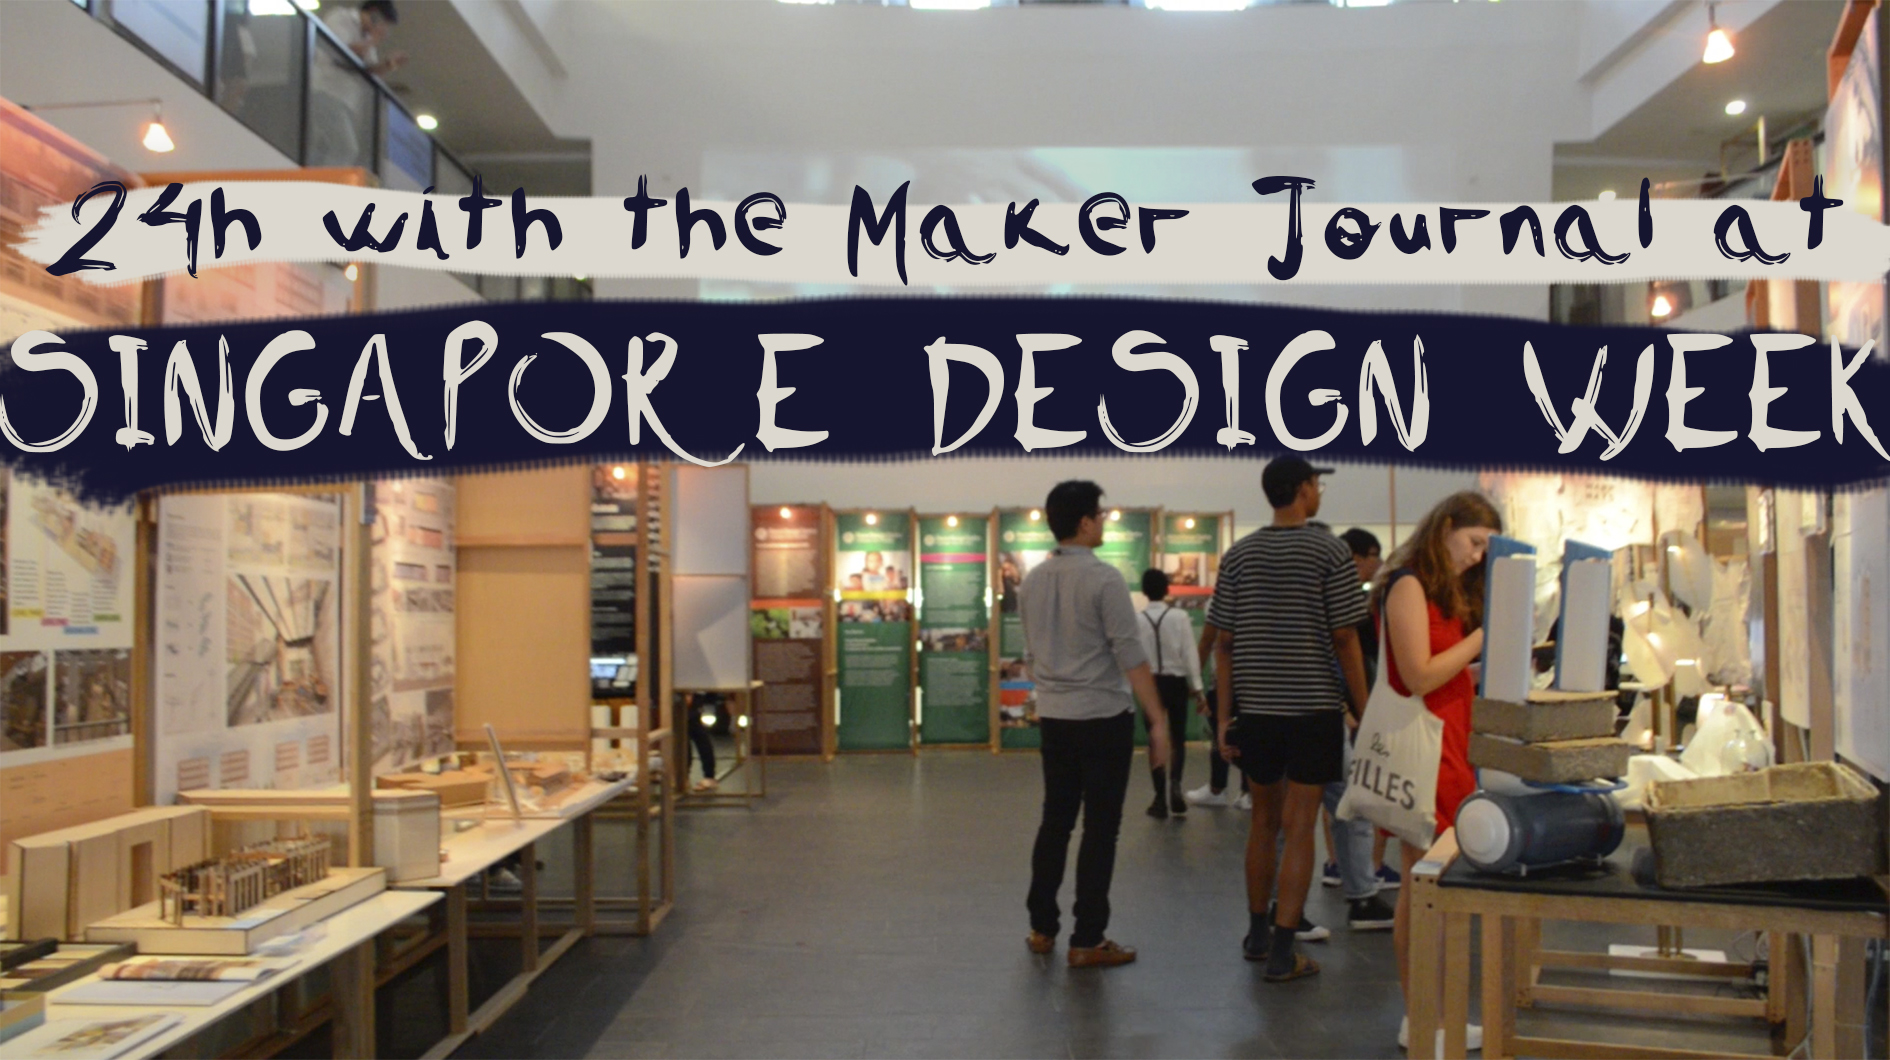 24h with The Maker at Singapore Design Week